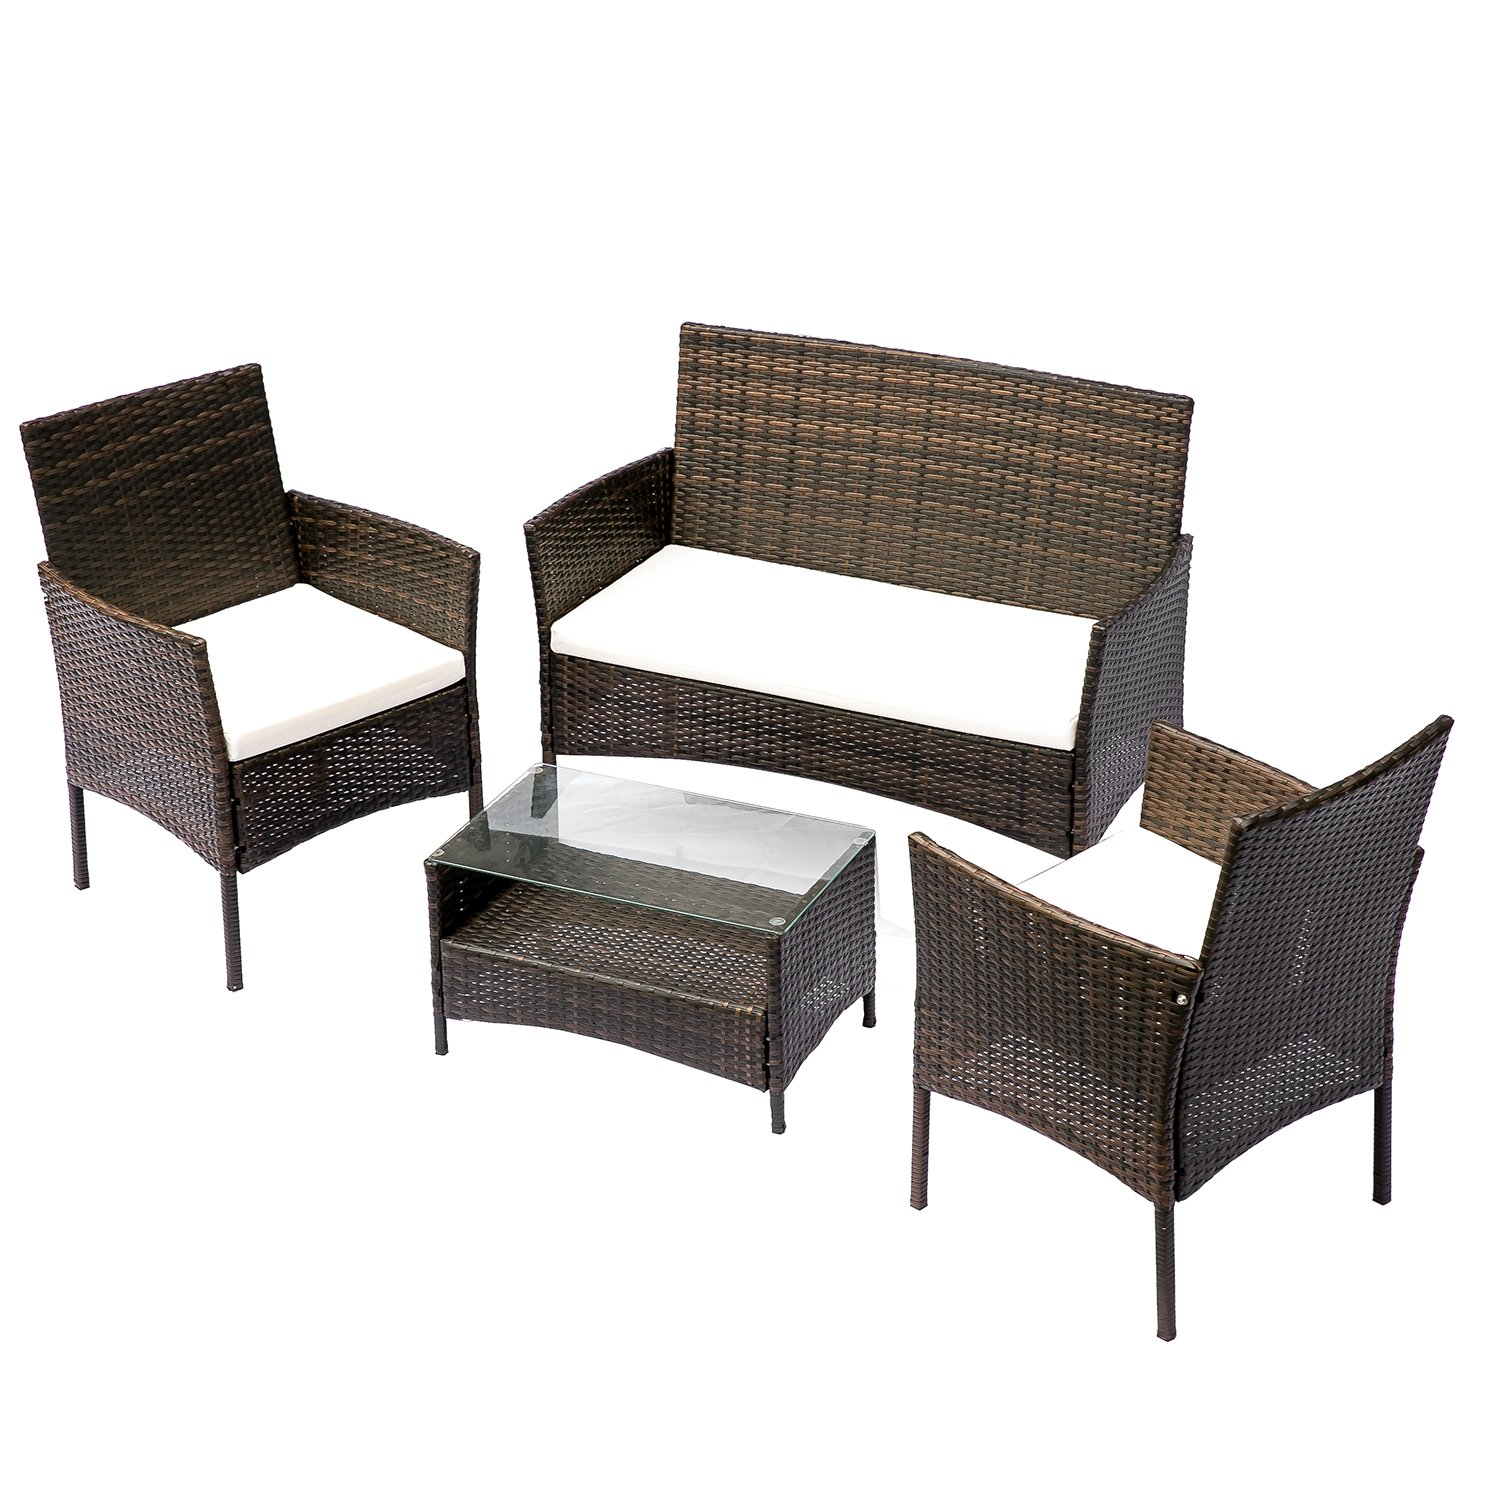 HANs Outdoor Rattan Furniture Sets 4PC Wicker Patio Furniture with Cushioned Seats by HANs (Image #1)